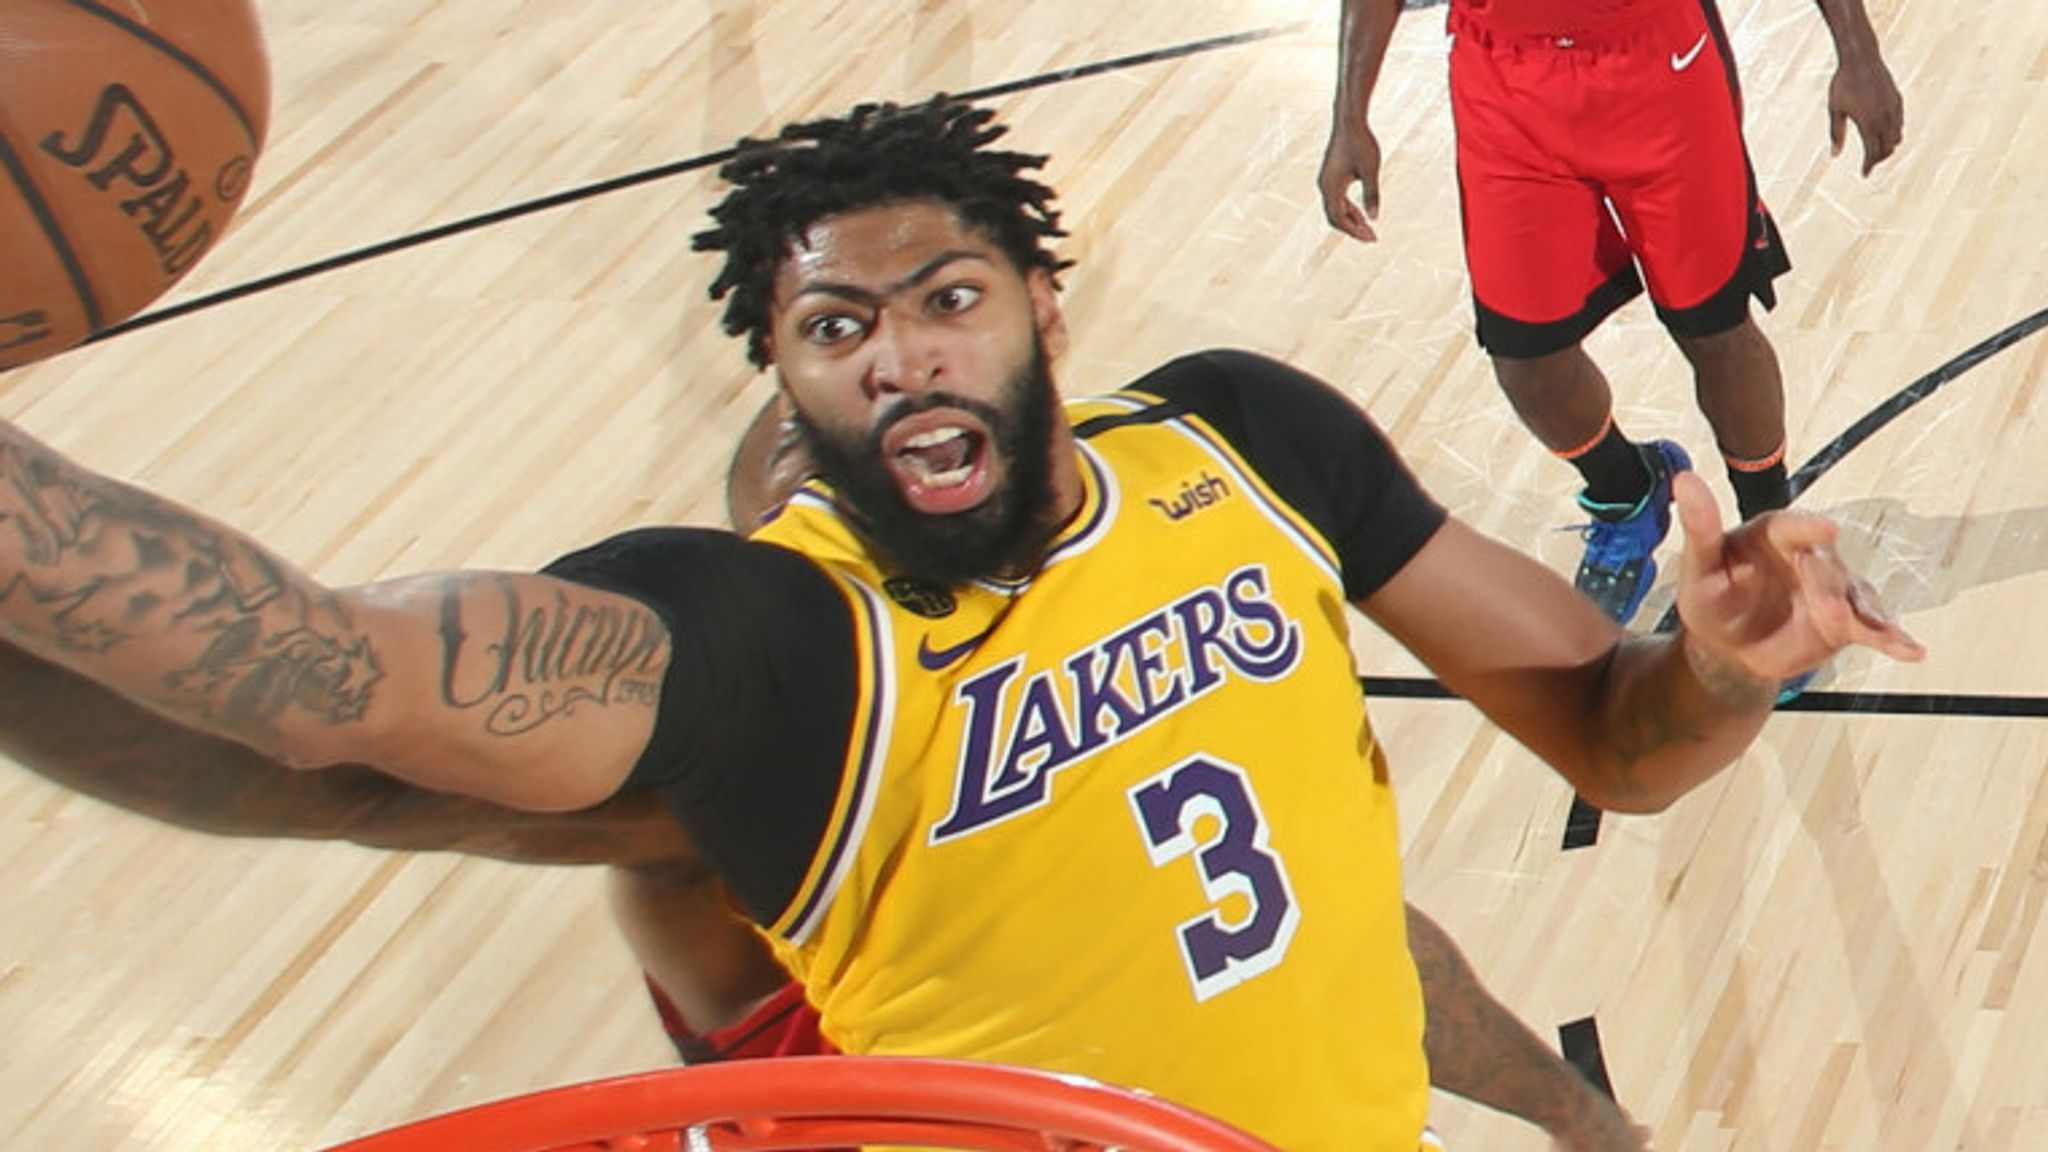 Anthony Davis elevates to the rim in the Lakers' Game 4 win over the Rockets